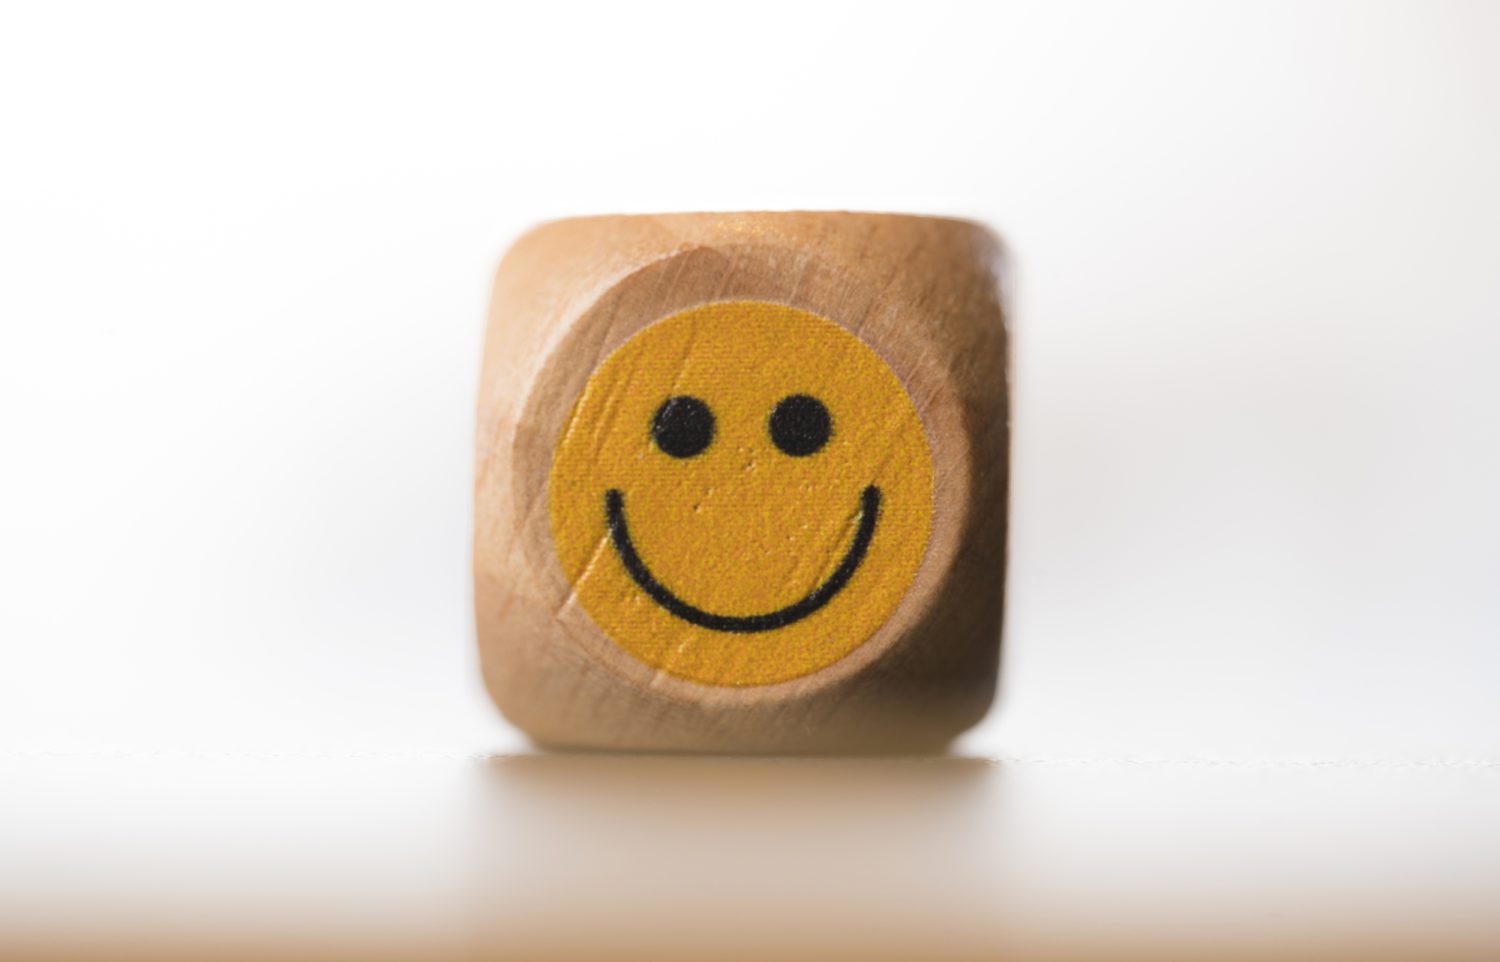 Beautifully crafted wooden dice with a different emoticon on each face